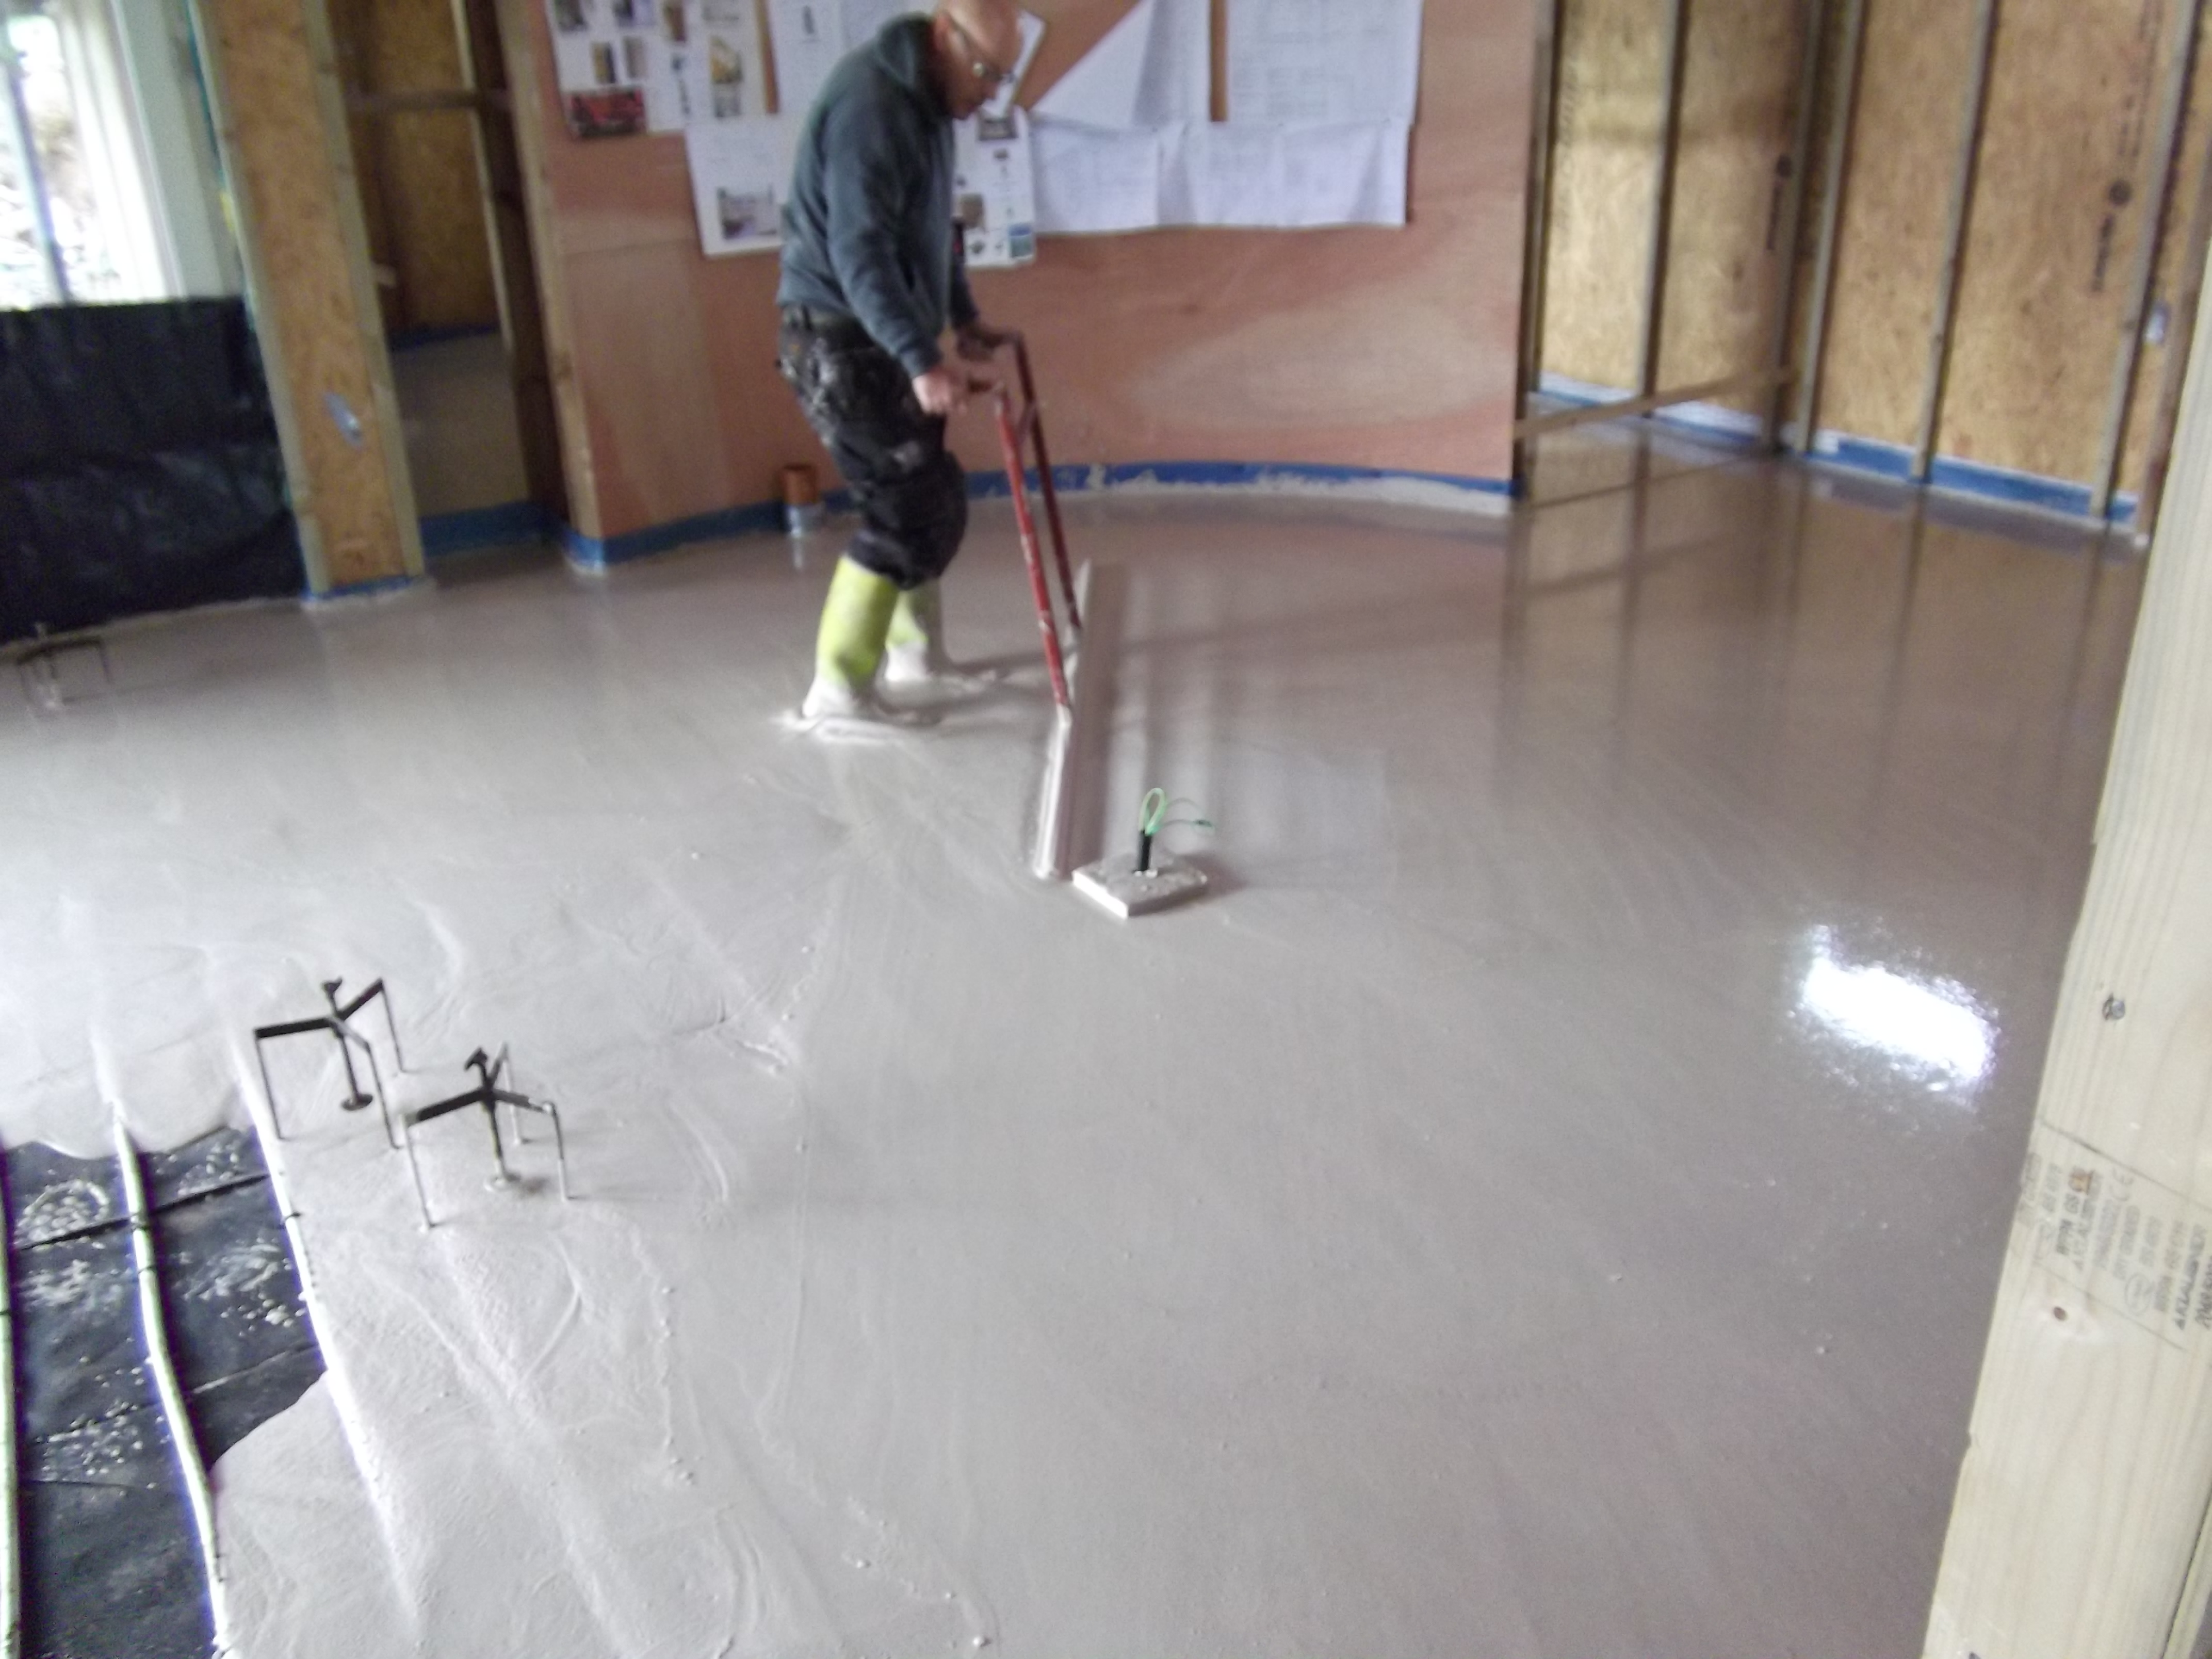 bathroom floor screed ccf midlands fluid ufh fluid plumbing fluid bathrooms 10681